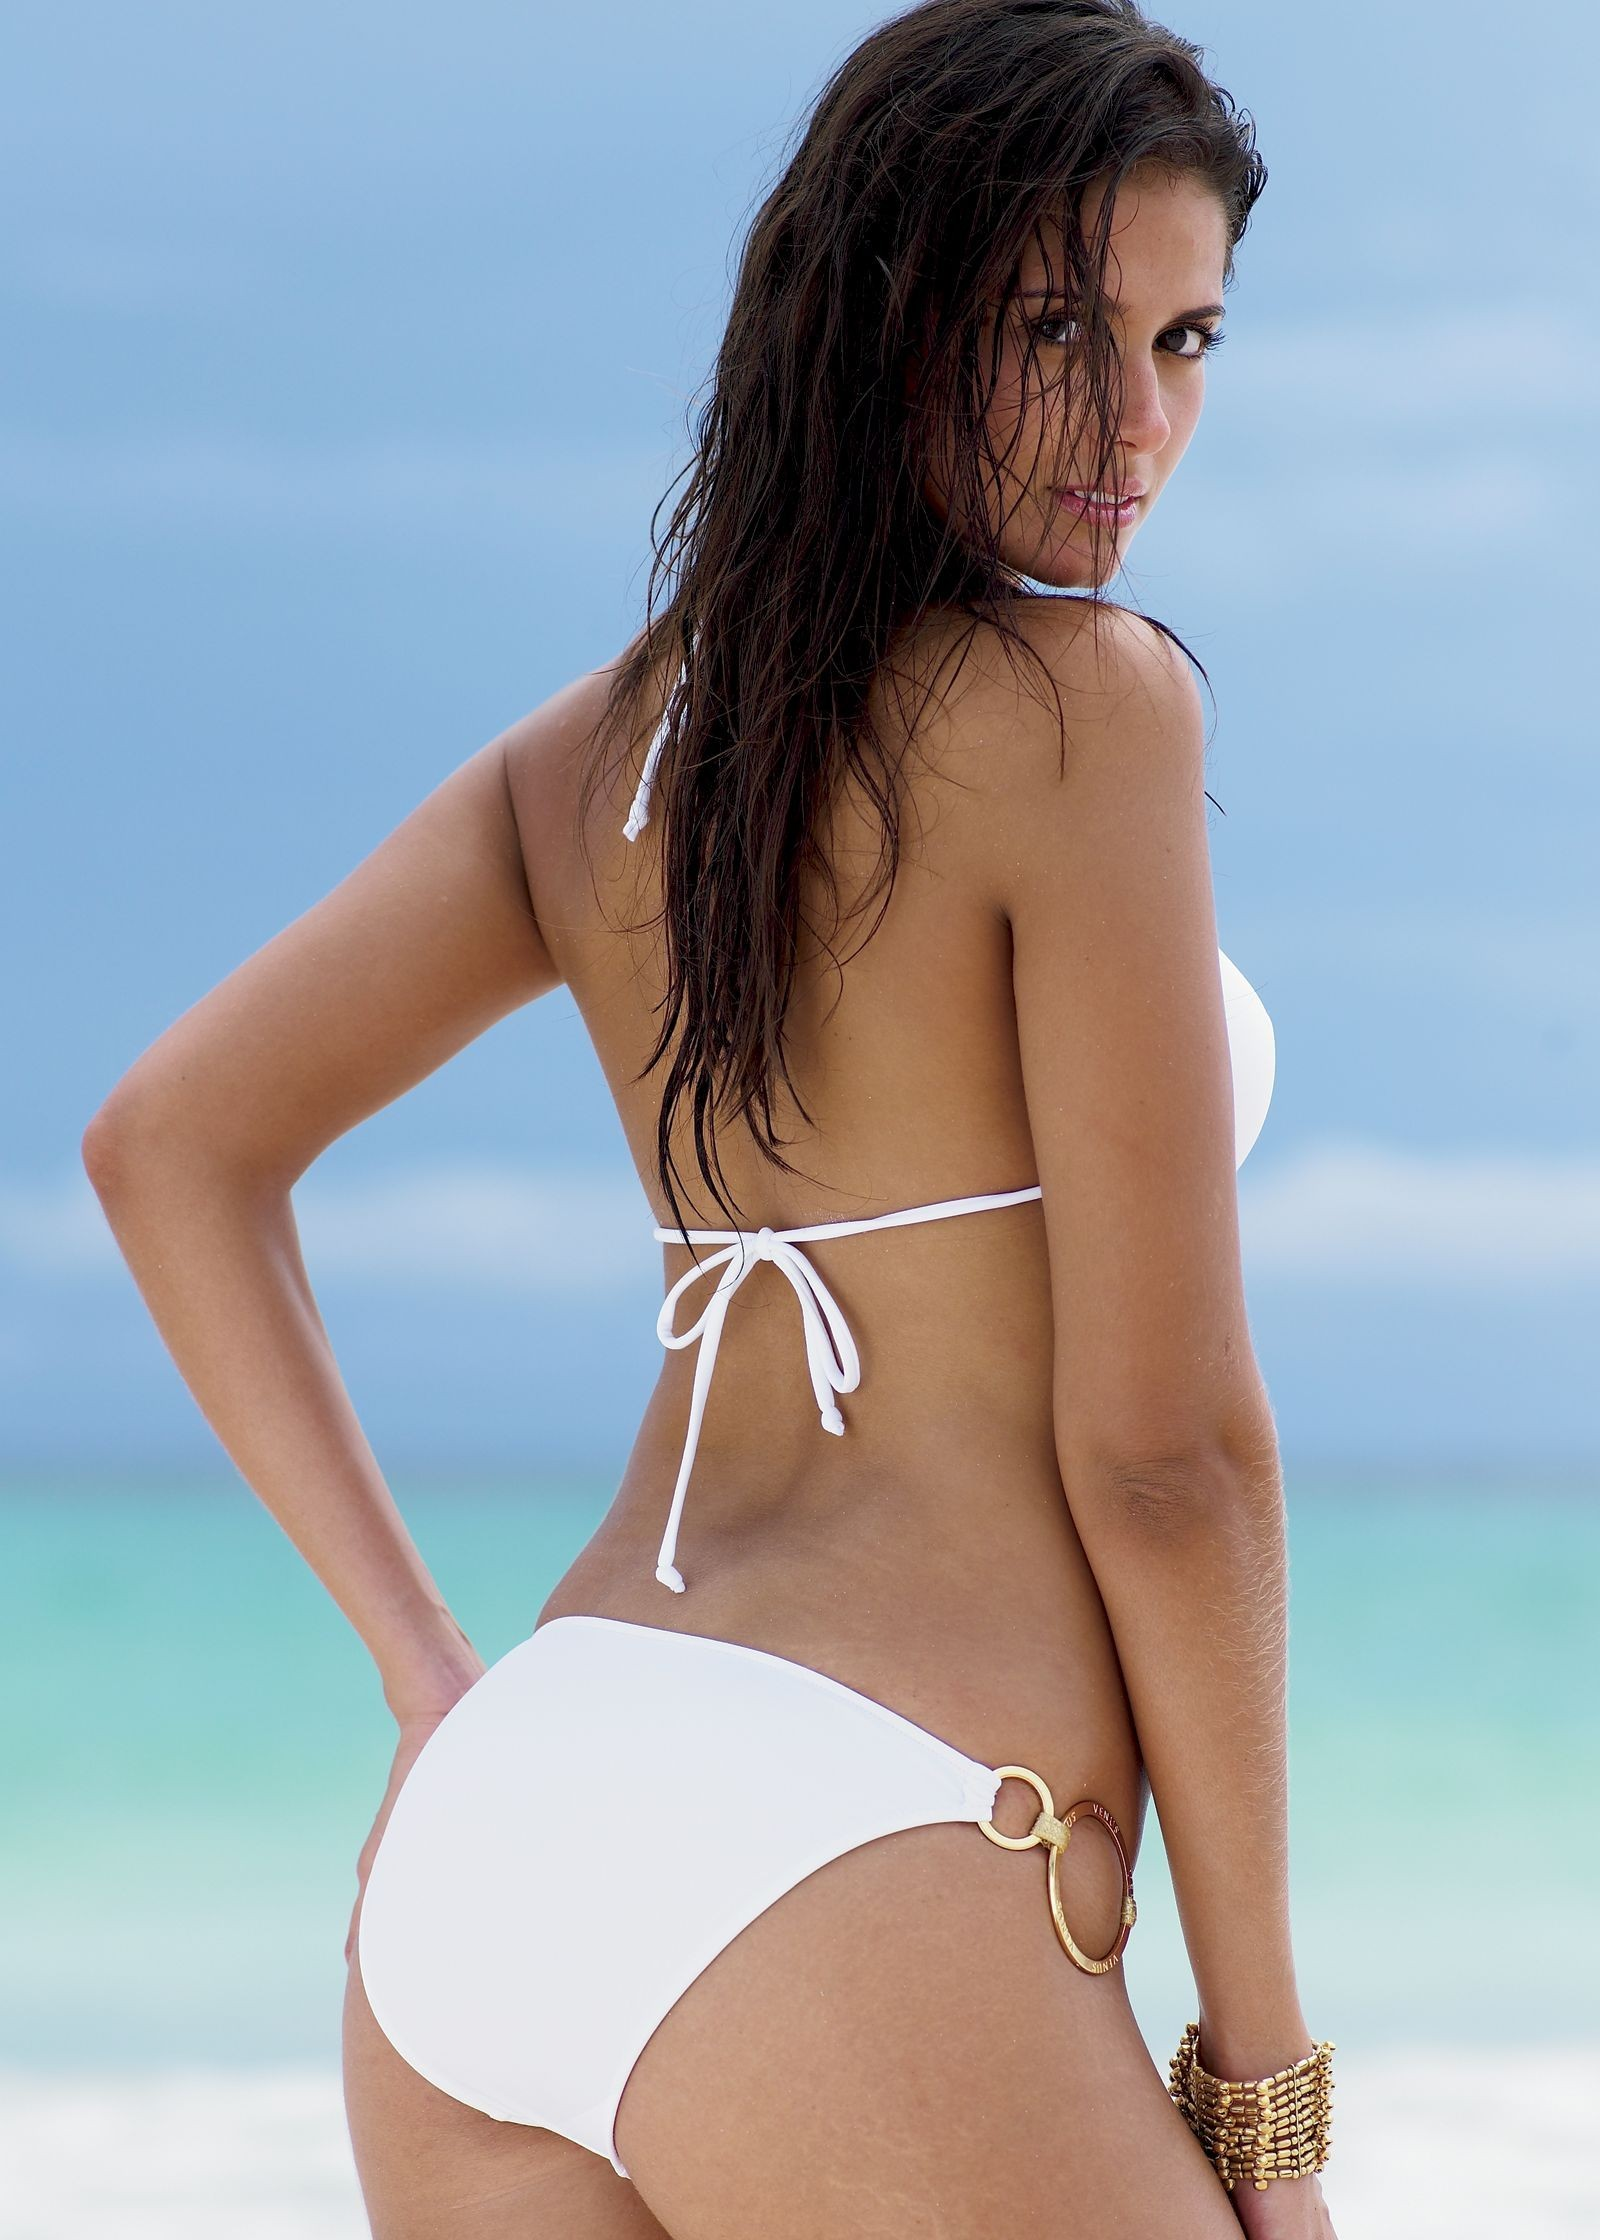 woman bikini carla ossa HD Wallpaper